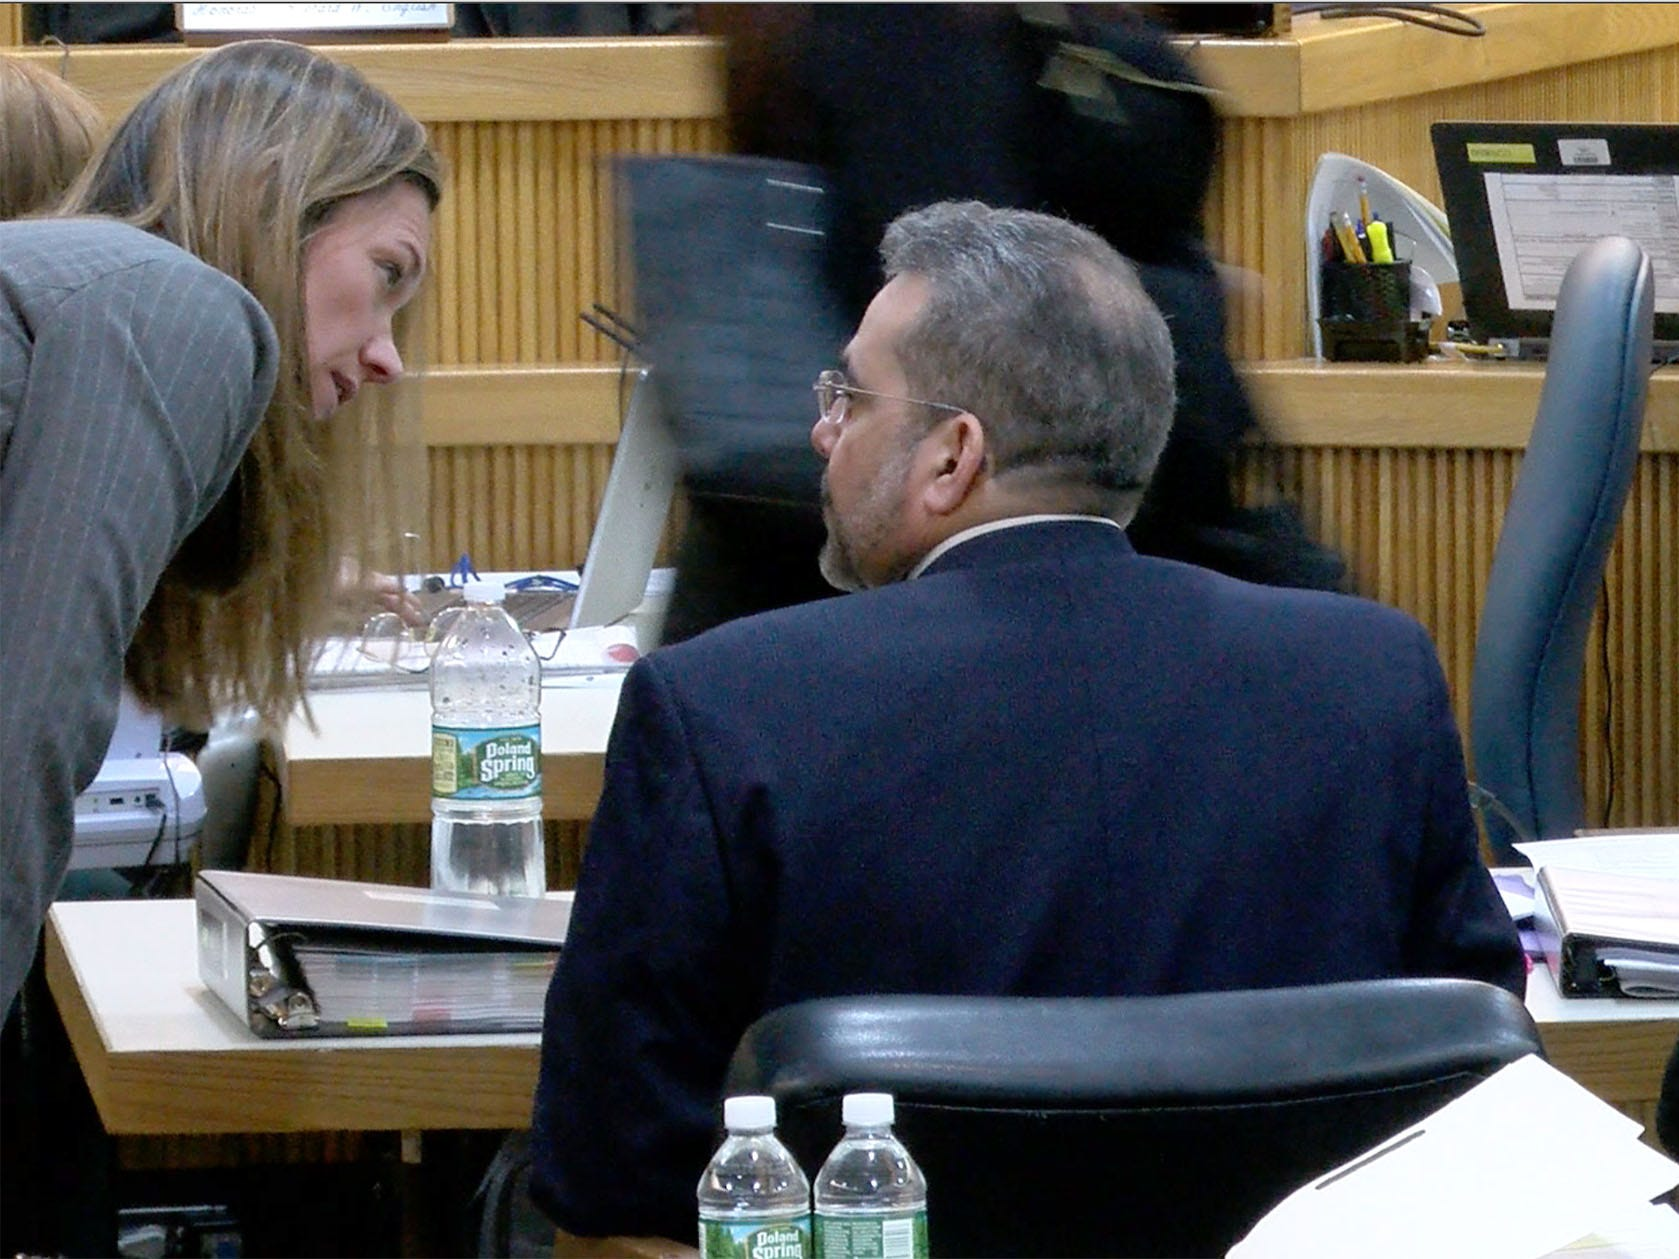 Monmouth County Assistant Prosecutor Meghan Doyle speaks with defense attorney Carlos Dias-Cobo in State Superior Court Judge Richard English's courtroom in Freehold Tuesday, February 5, 2019.  Liam McAtasney (at right) is on trial there for the murder of Sarah Stern.